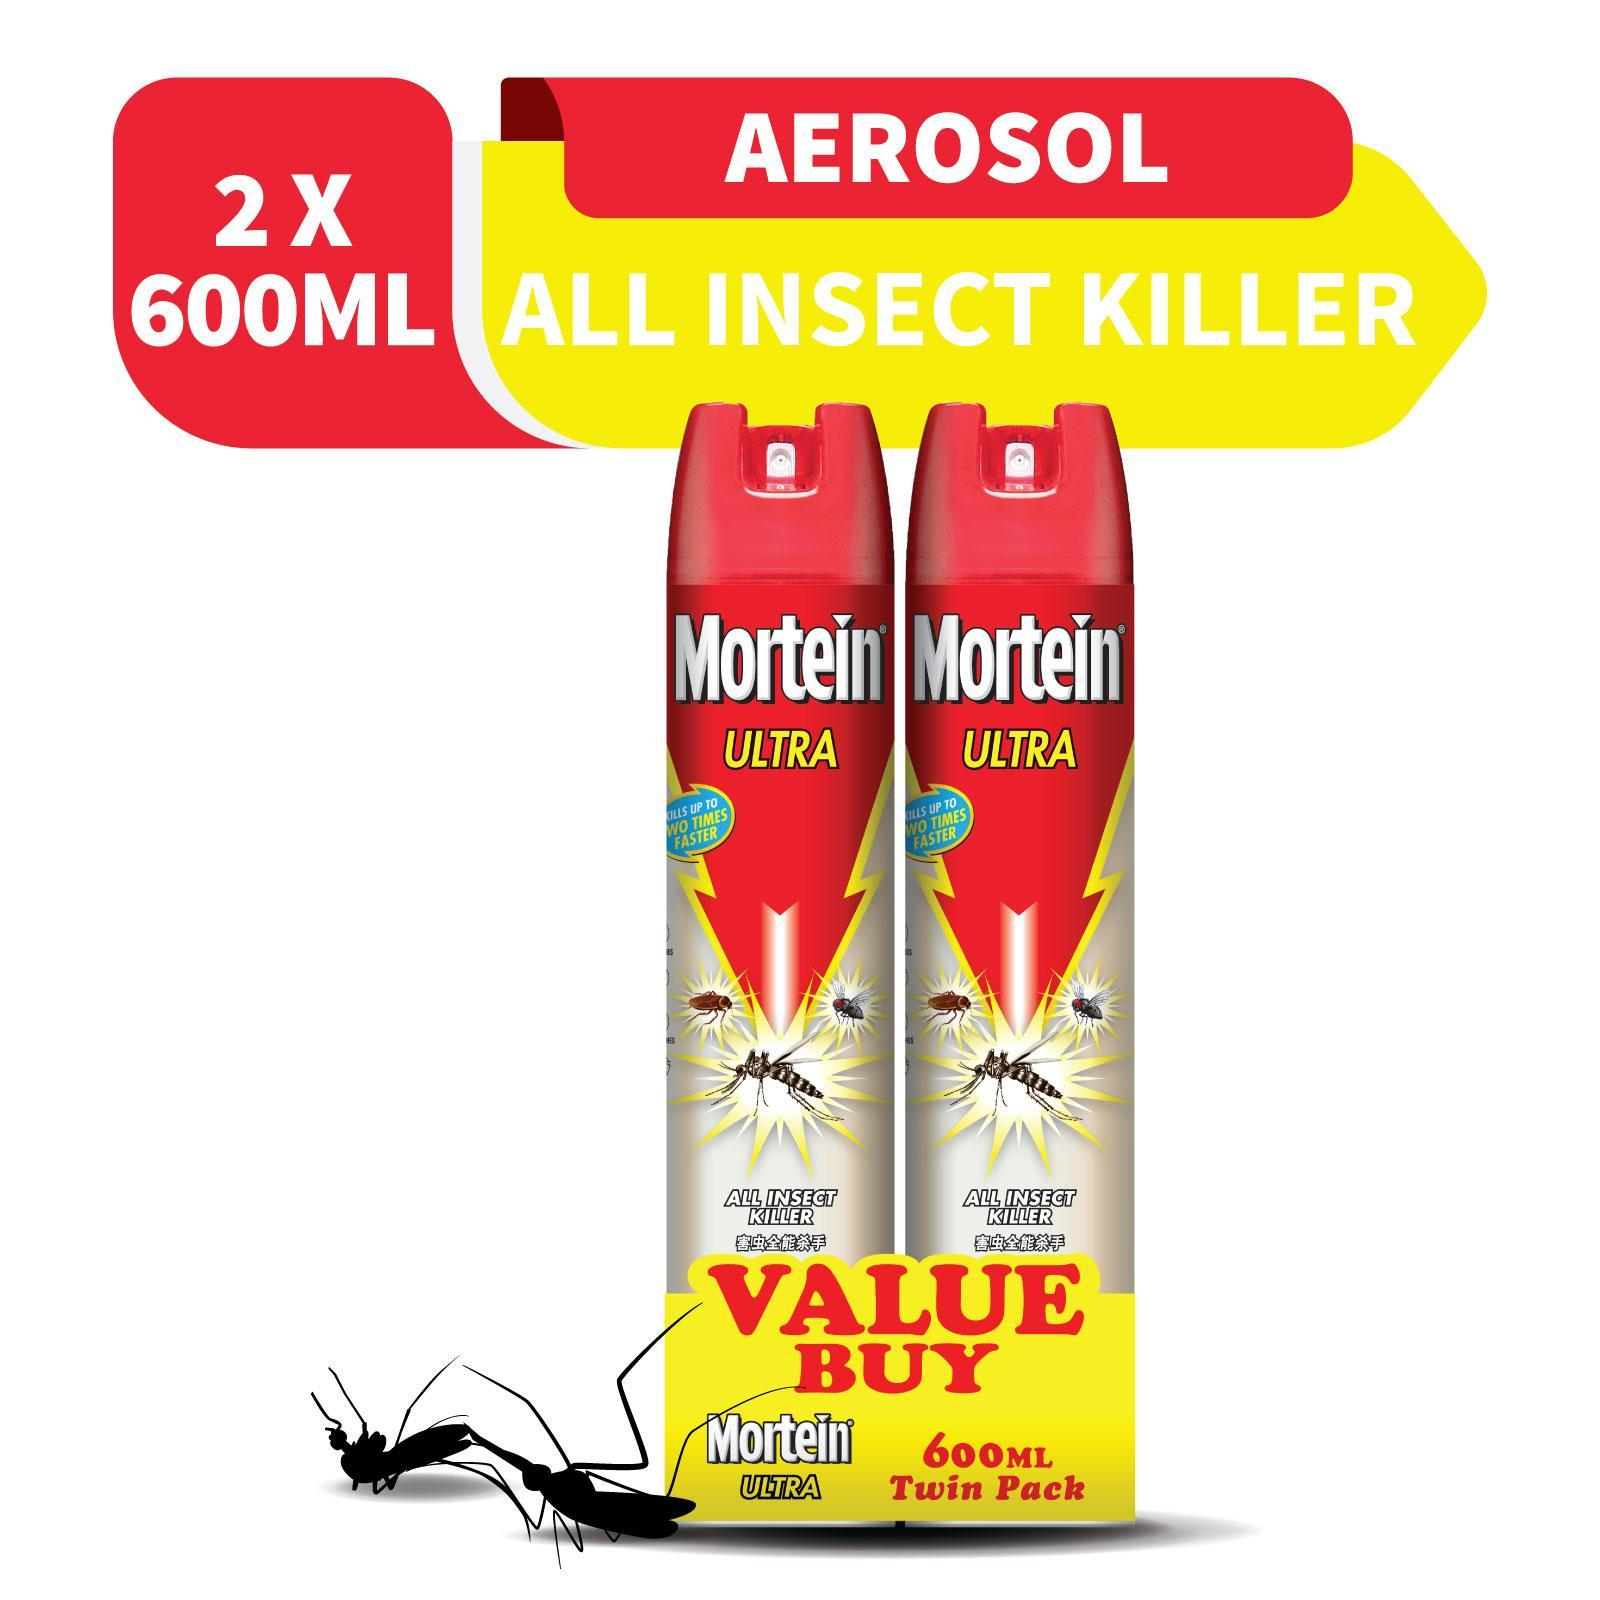 Mortein Ultra Odourless All Insect Killer Twin Pack By Redmart.